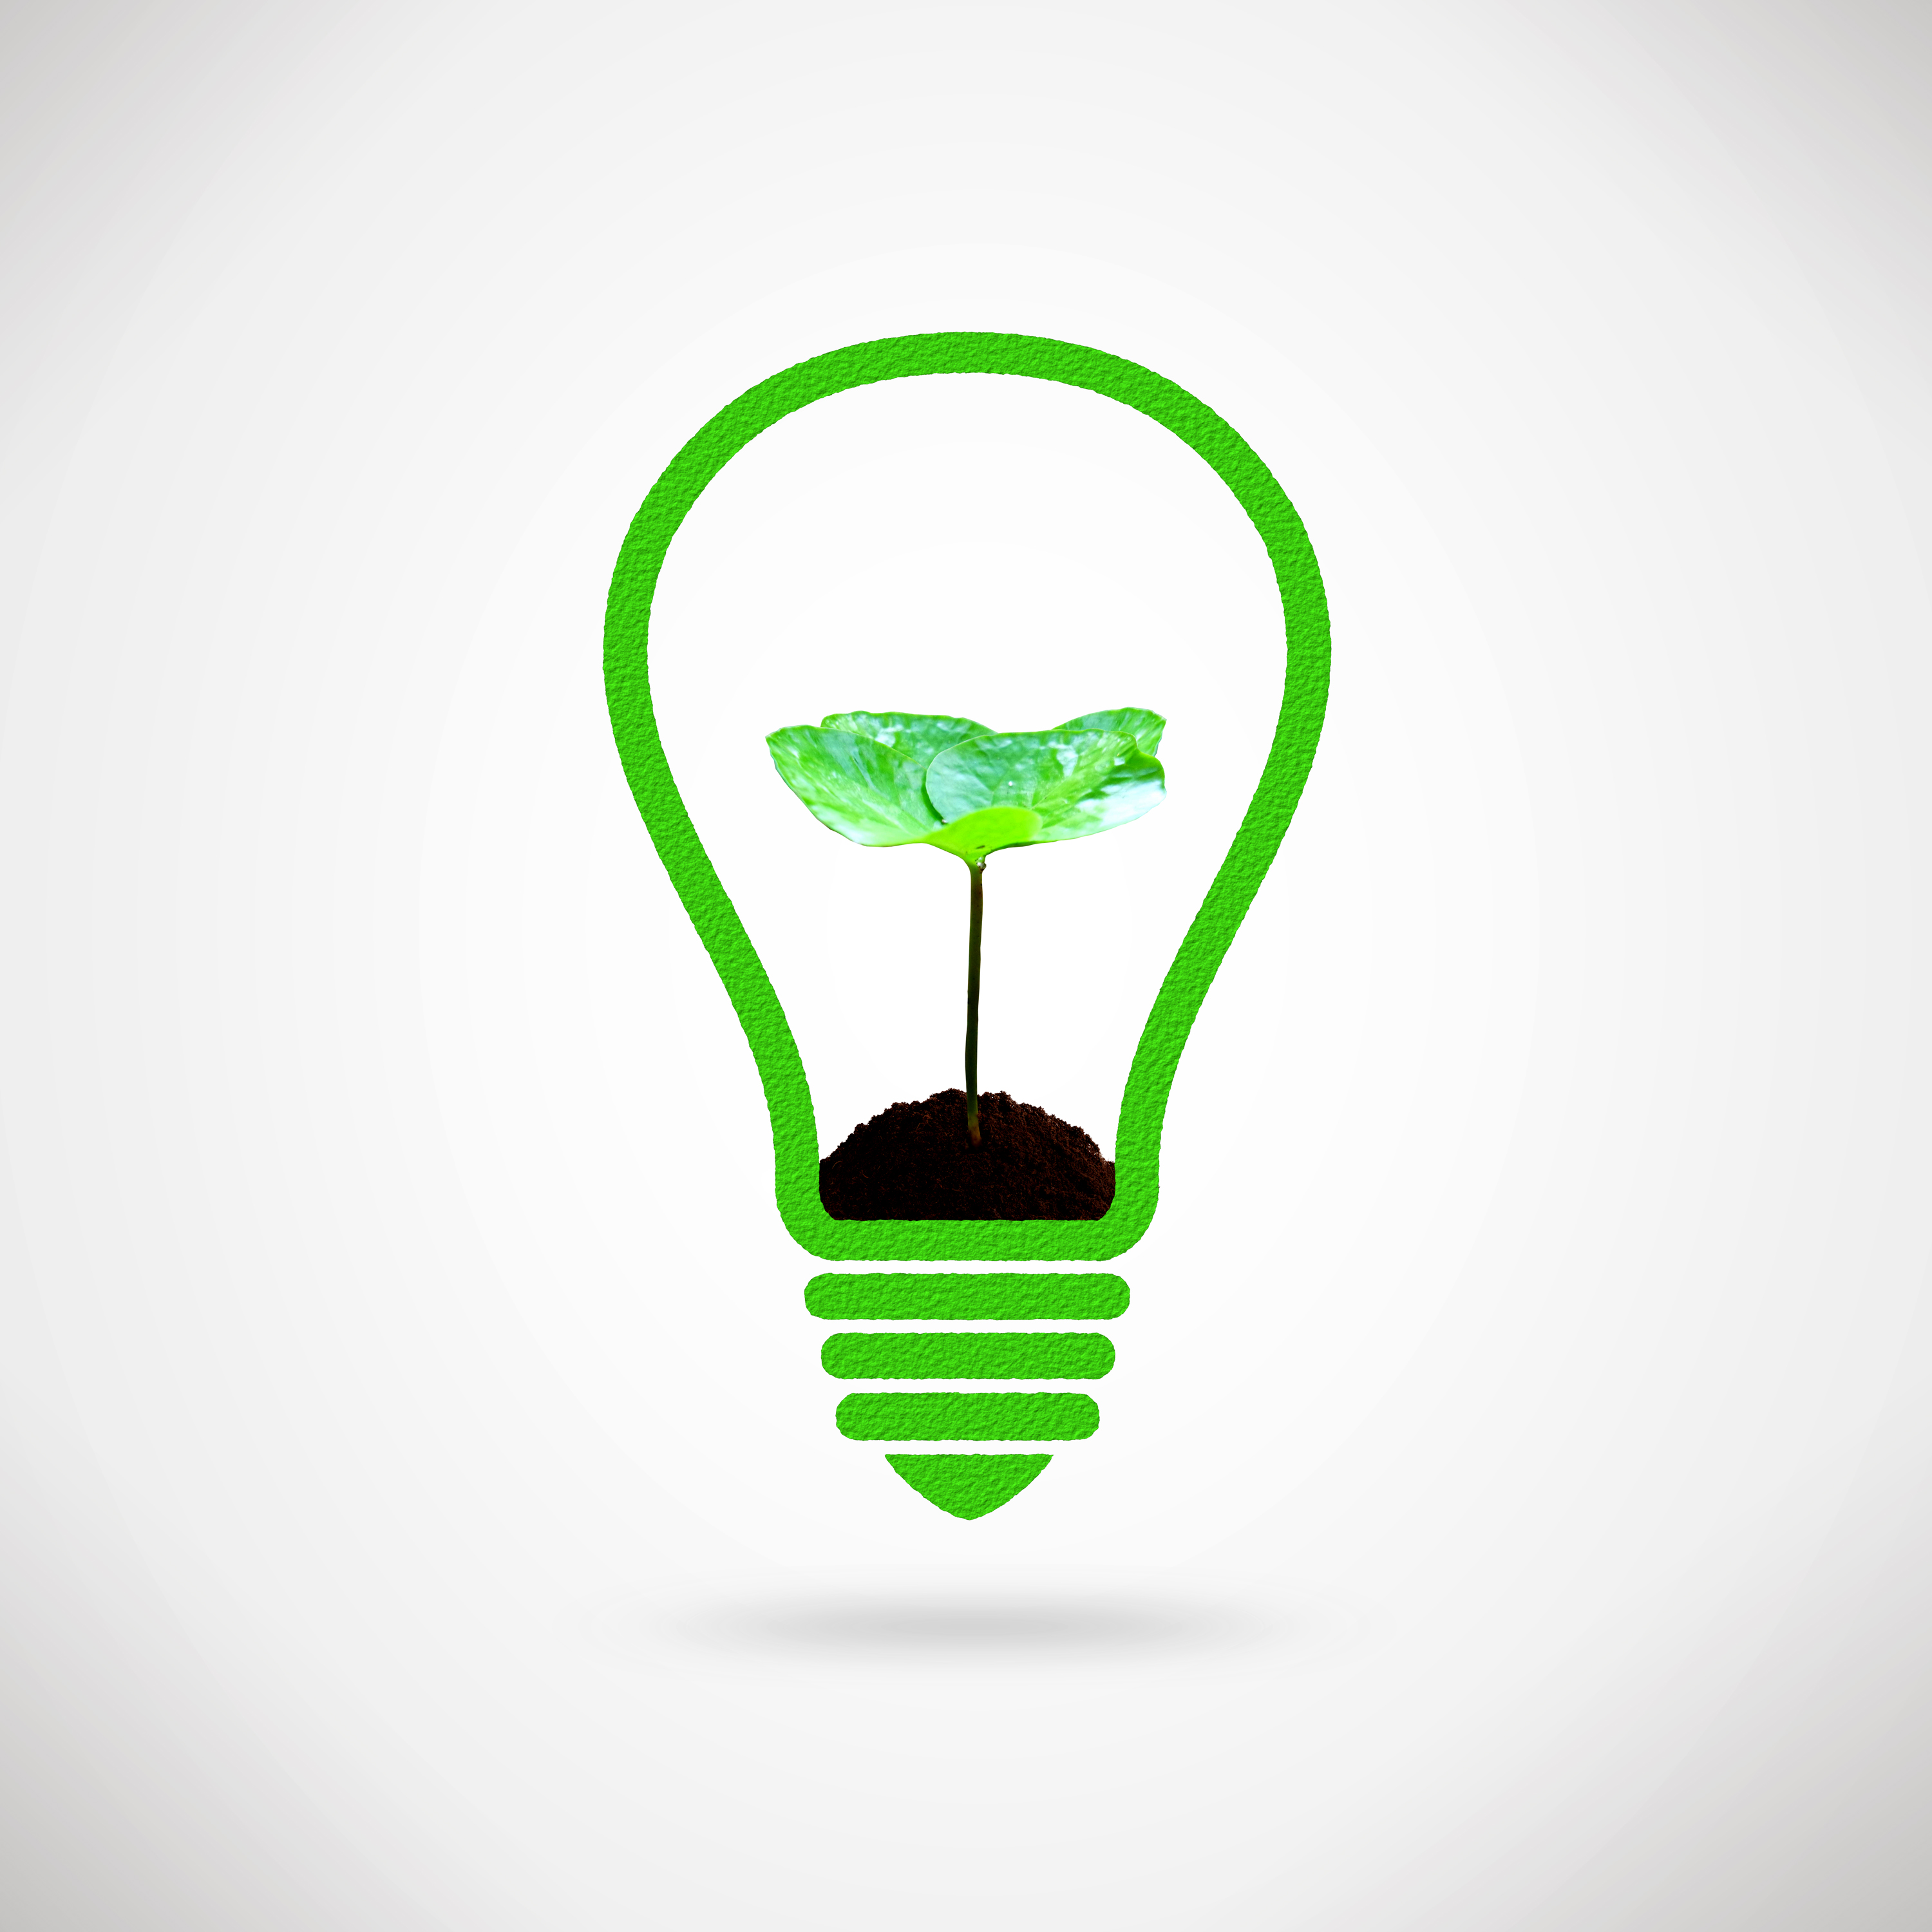 Lightbulb and plant sprout - ecology and environment idea photo